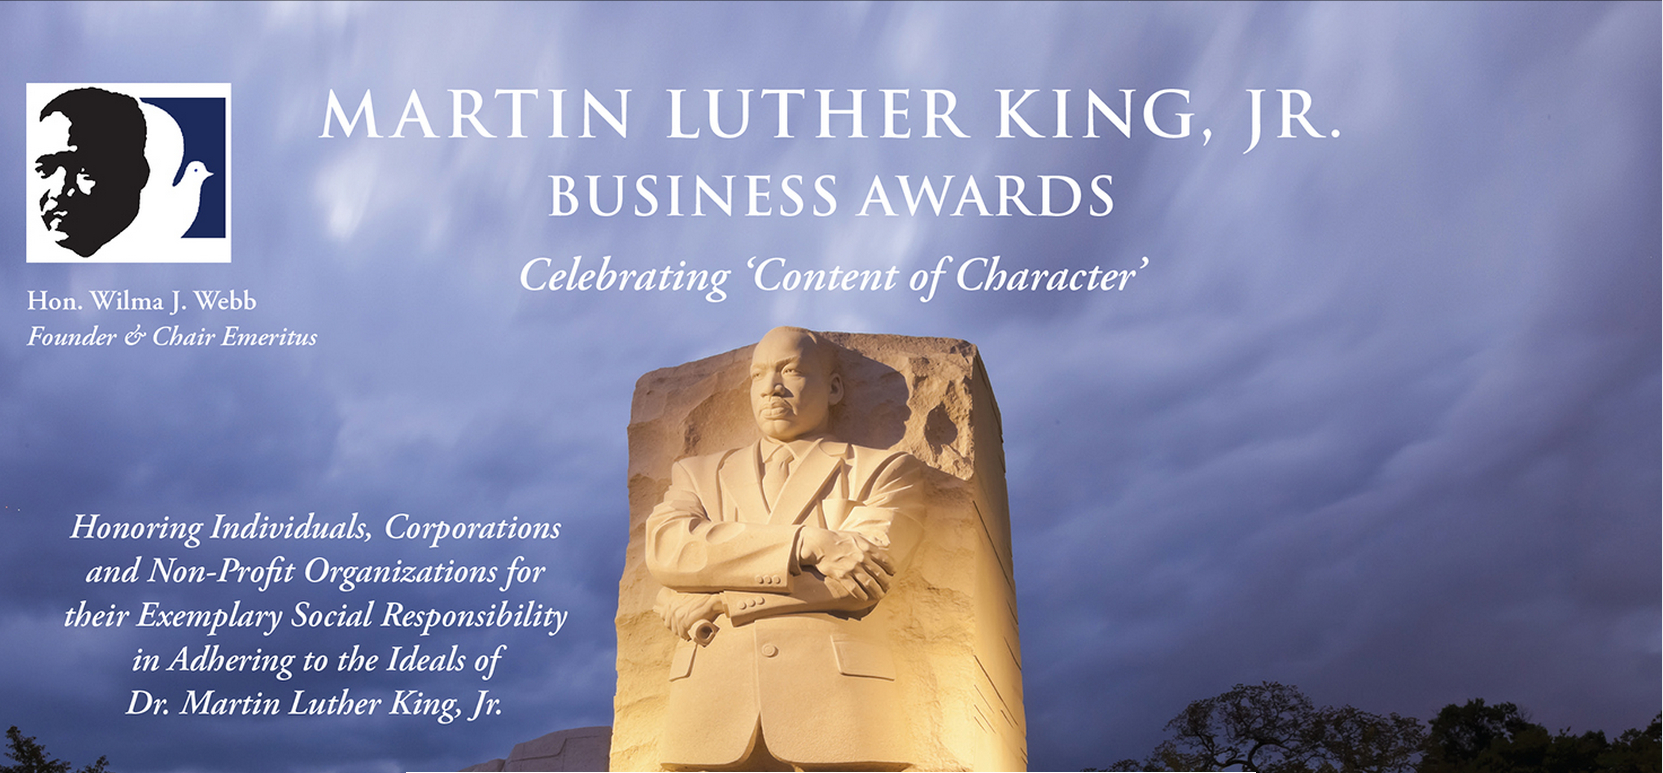 2017 Martin Luther King, Jr. Business Awards